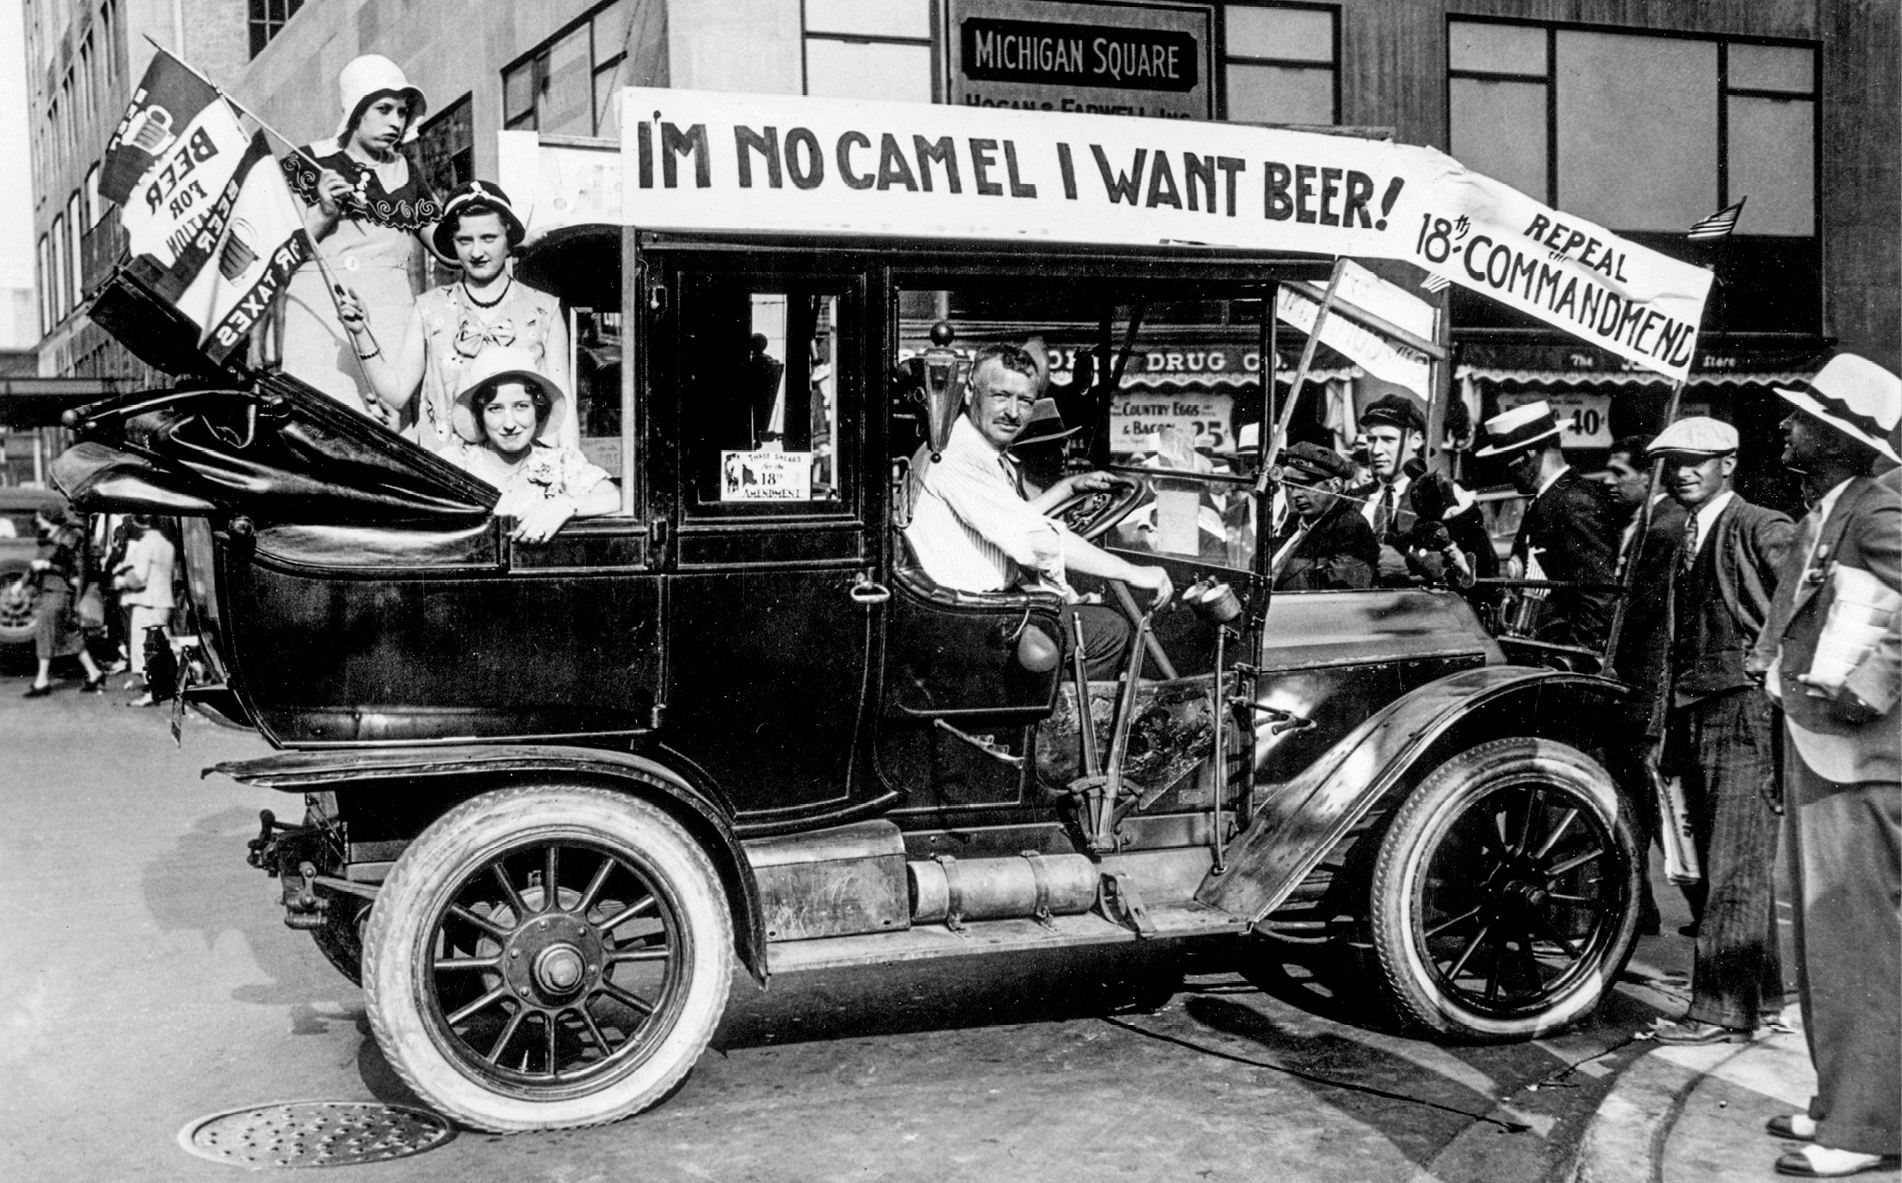 Prohibition protesters calling for the repeal of the 18th Amendment